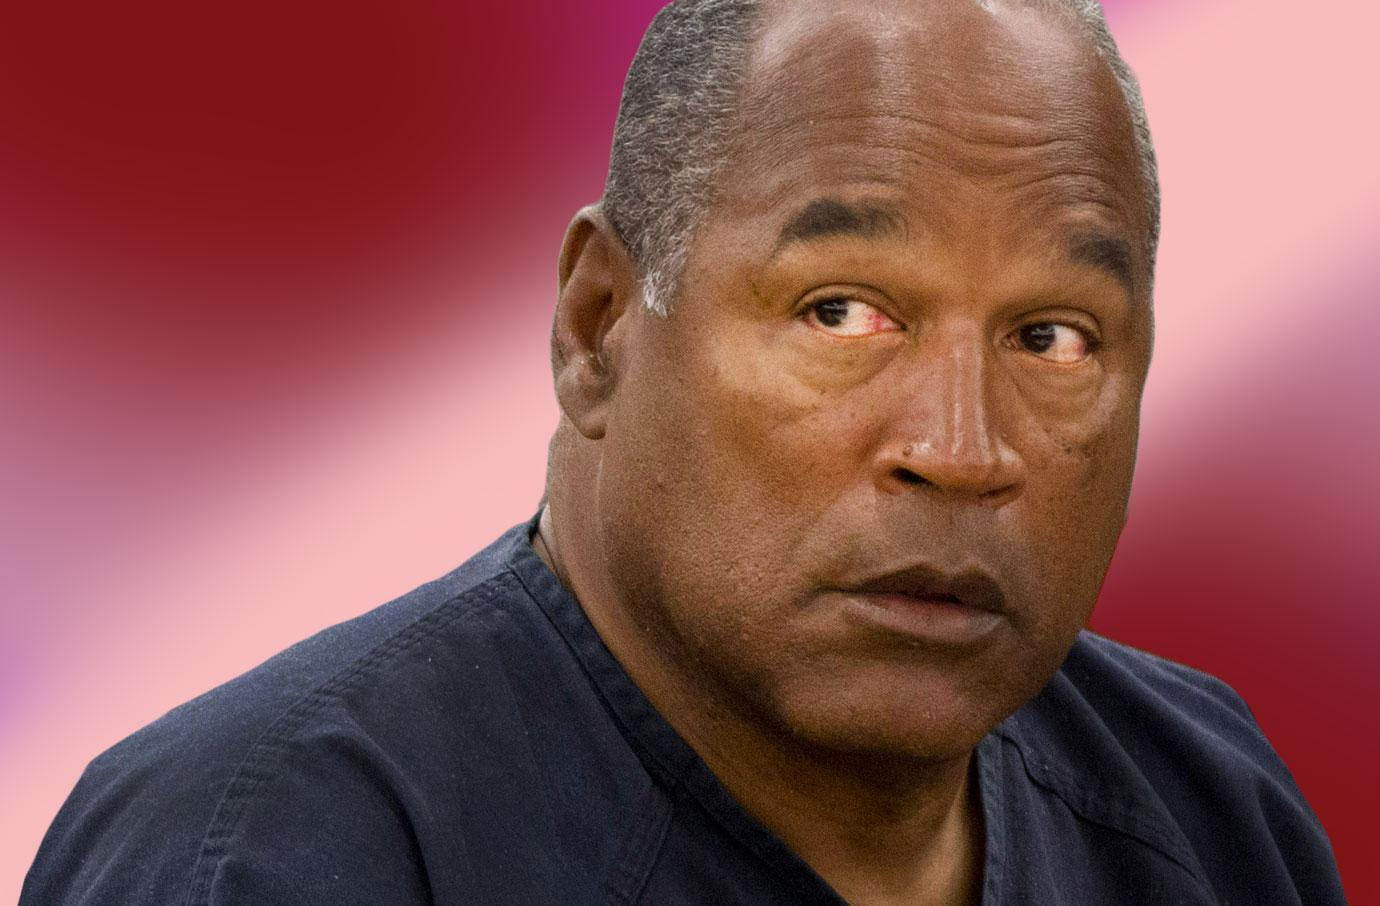 oj simpson caught masturbating cell denied parole